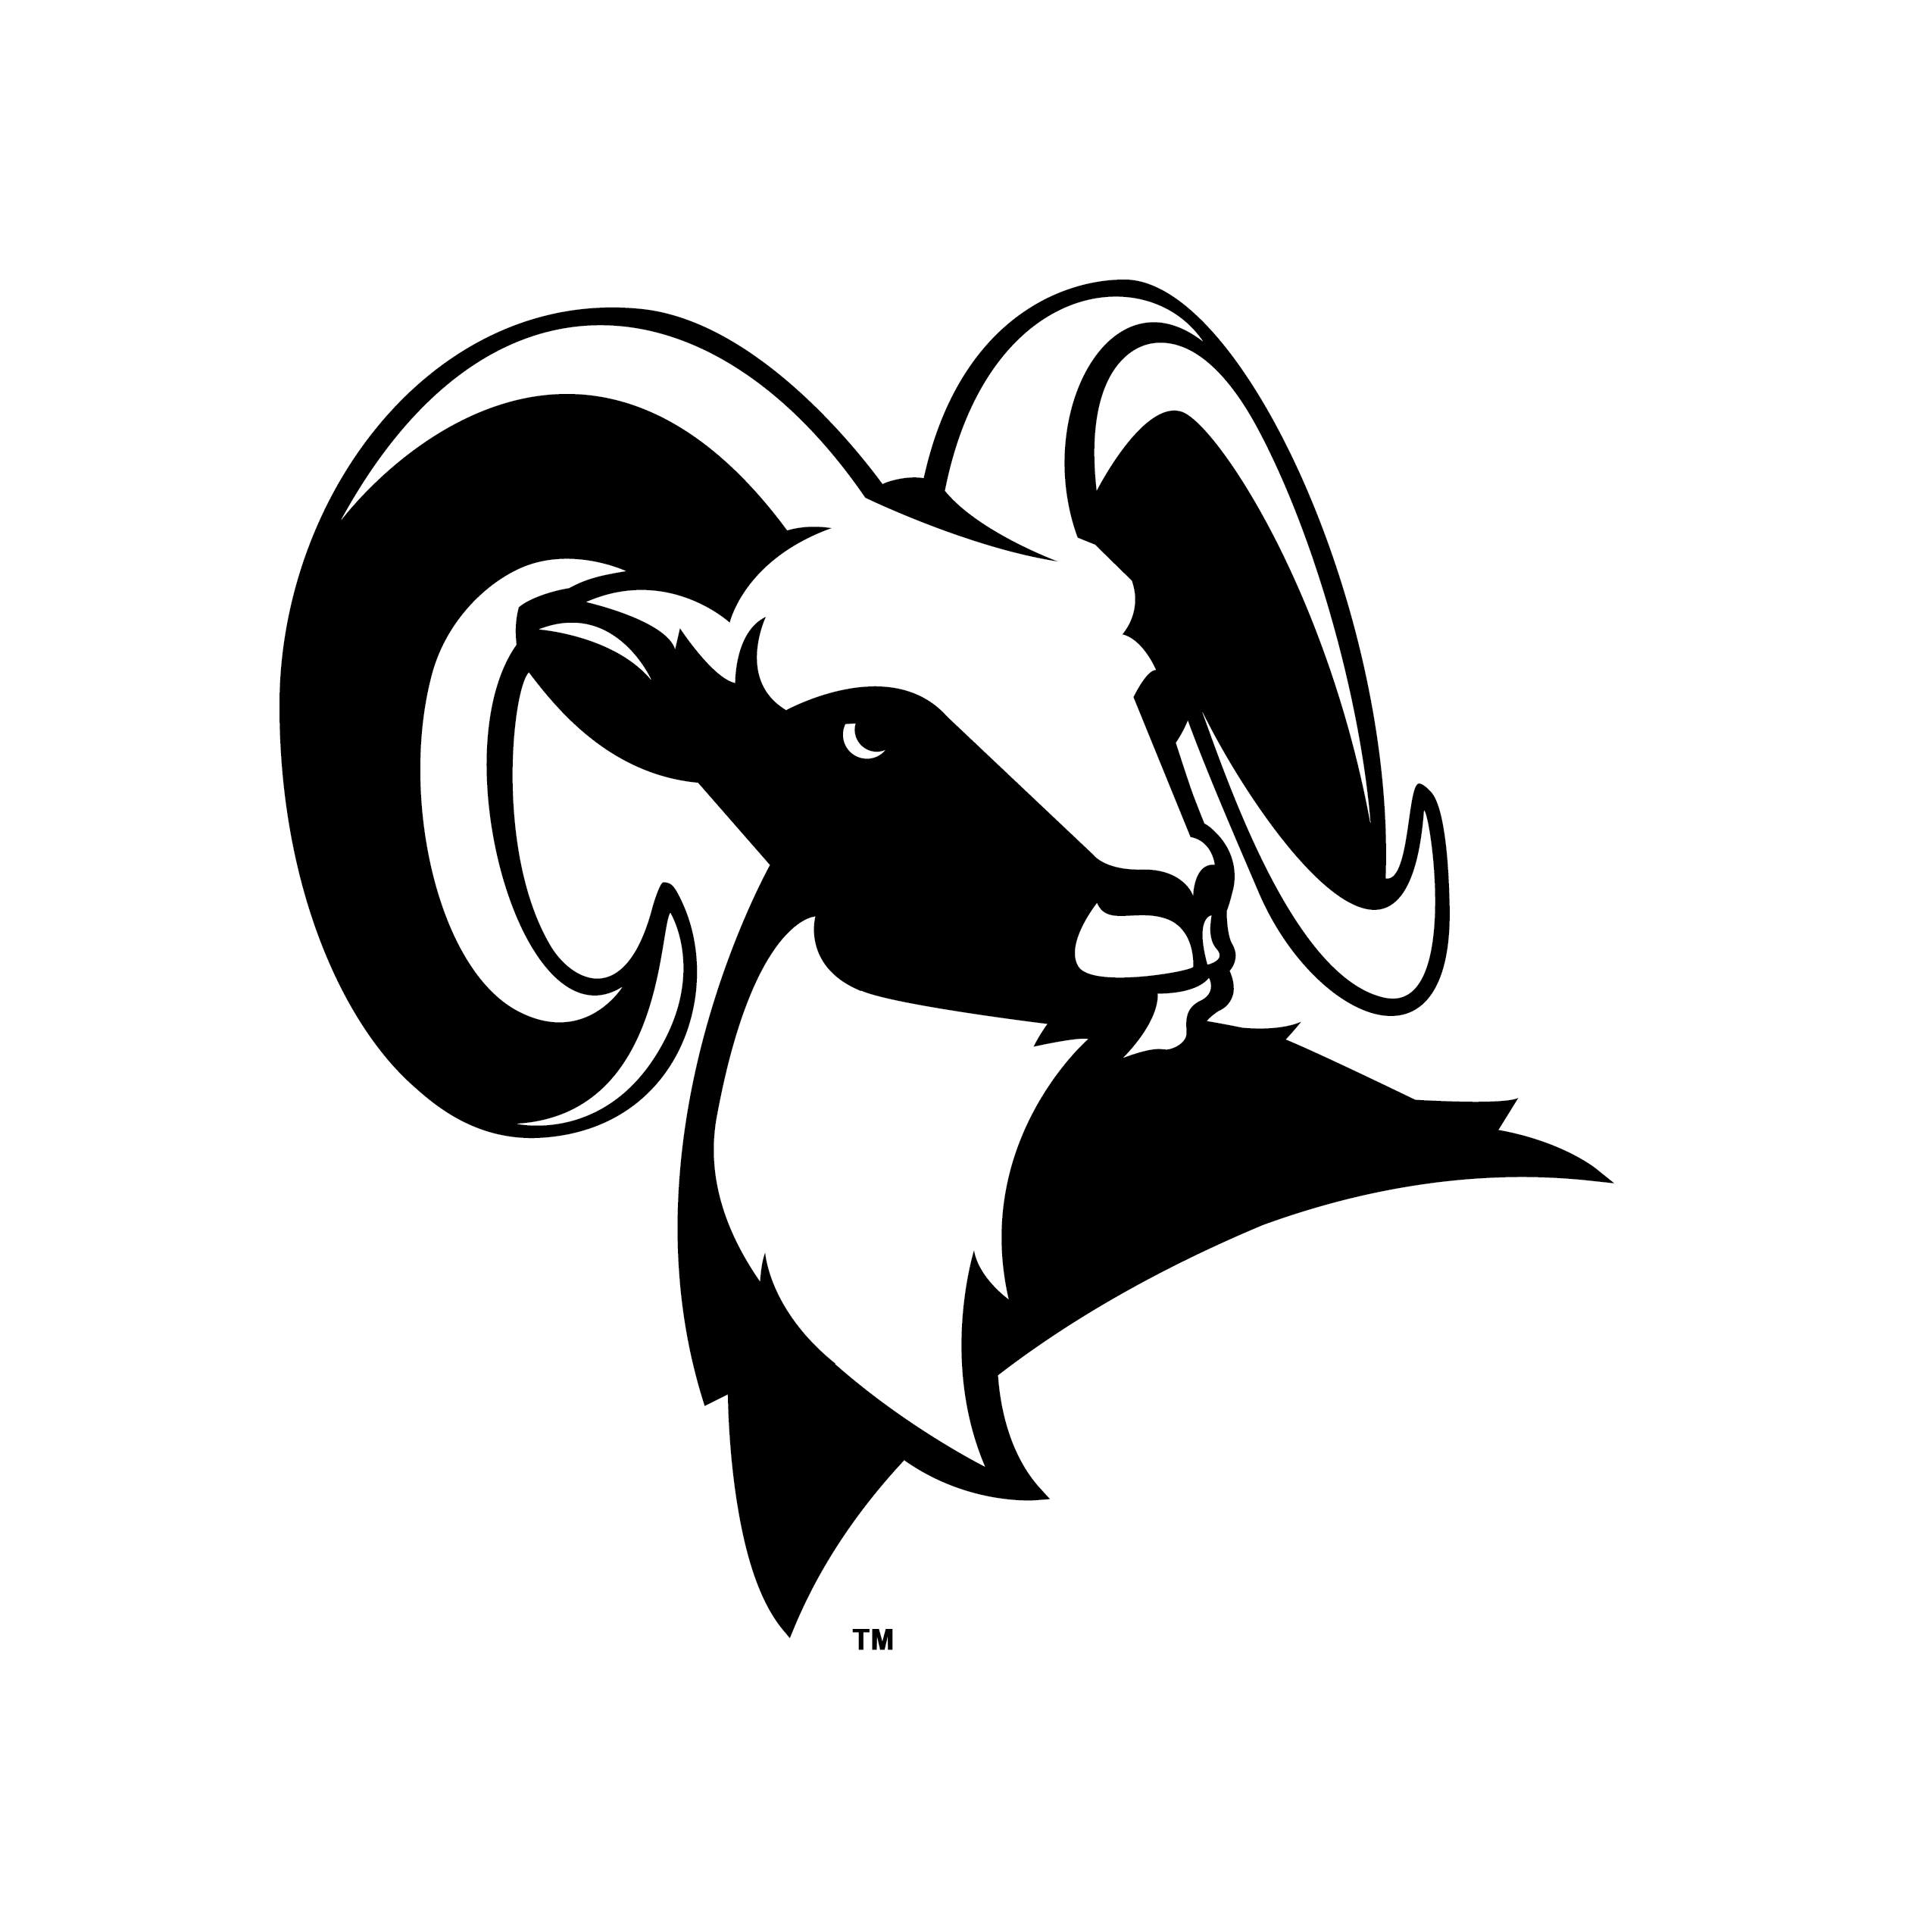 School office clipart black and white clip art royalty free library Los Angeles Rams Highland High School Philadelphia Eagles Tennessee ... clip art royalty free library